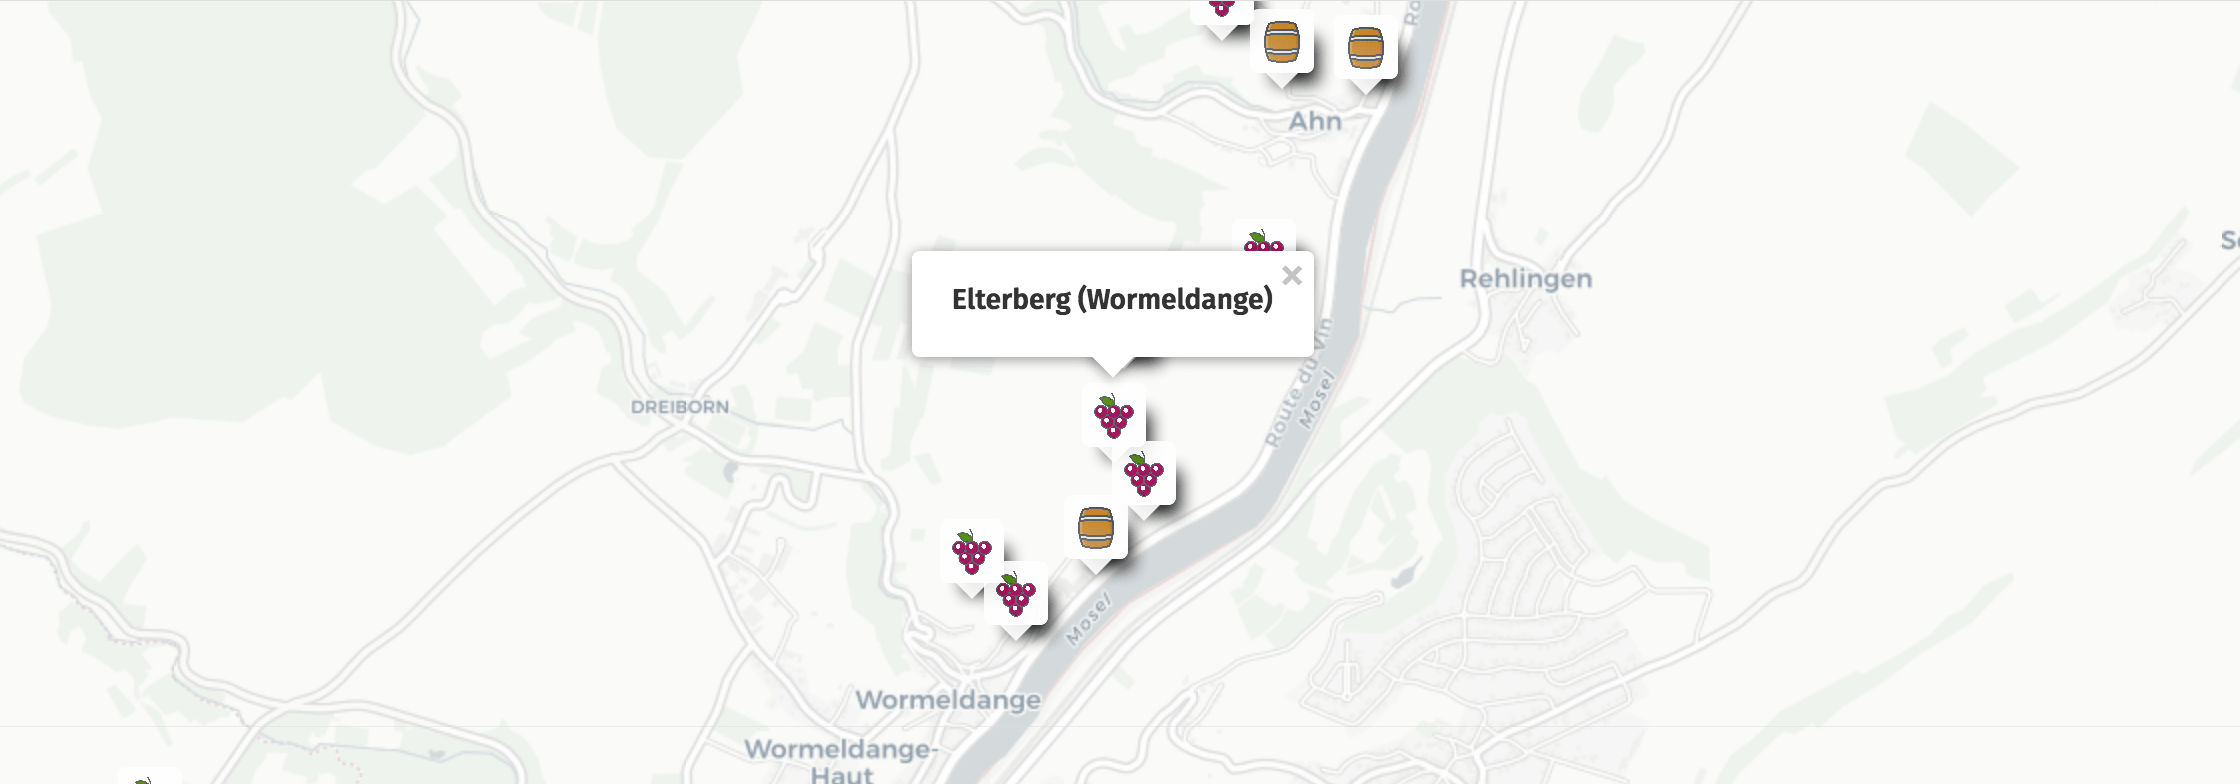 Geolocation of Elterberg wines in Wormeldange